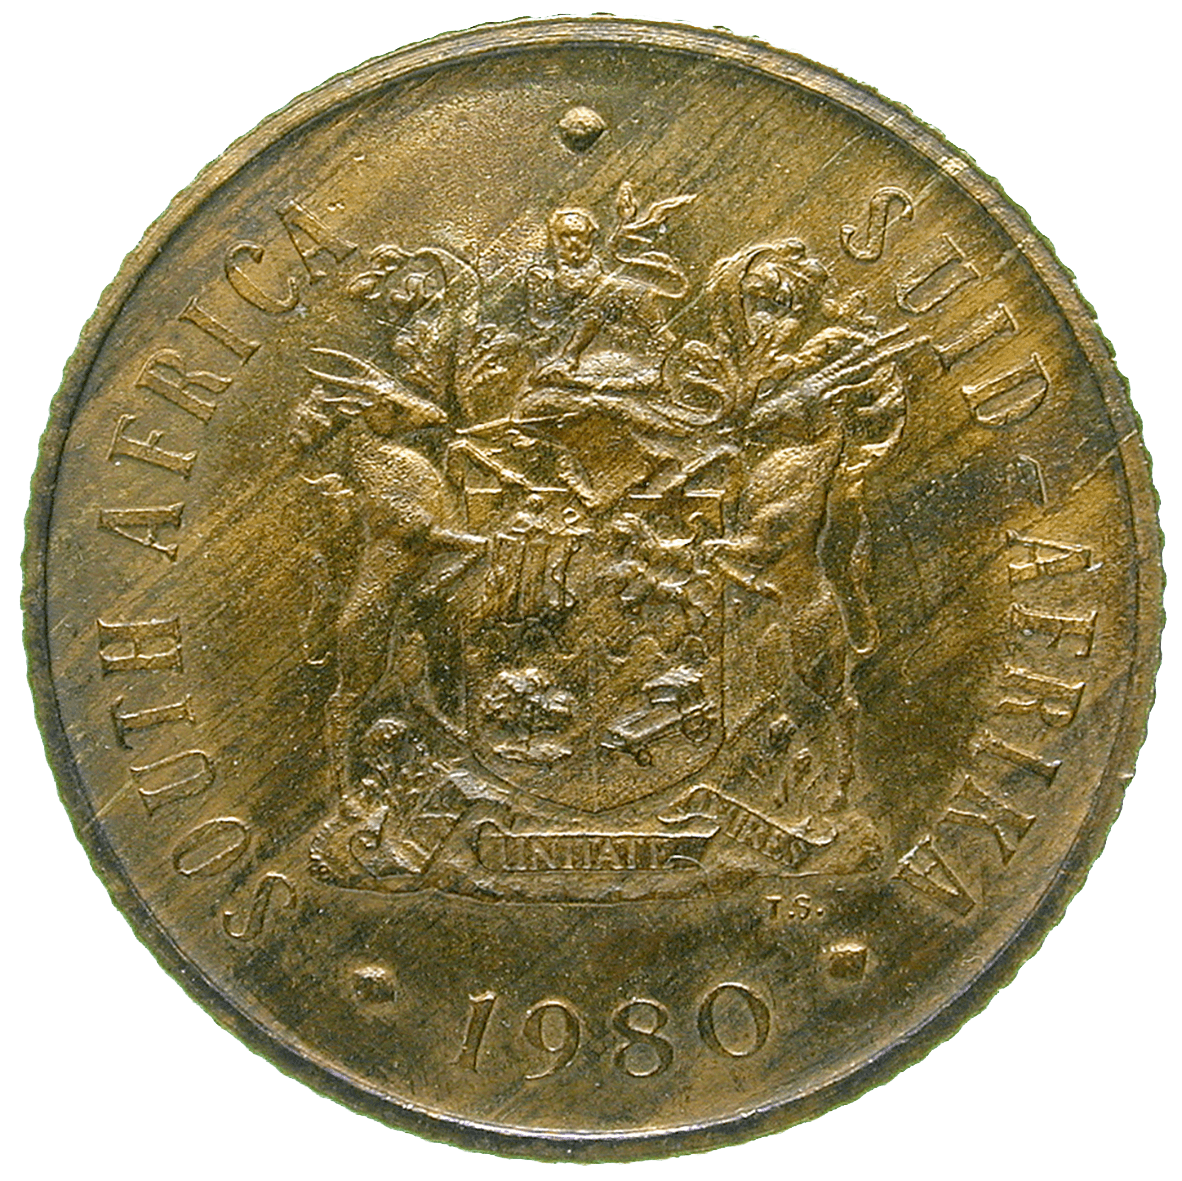 Republic of South Africa, 2 Cents 1980 (obverse)